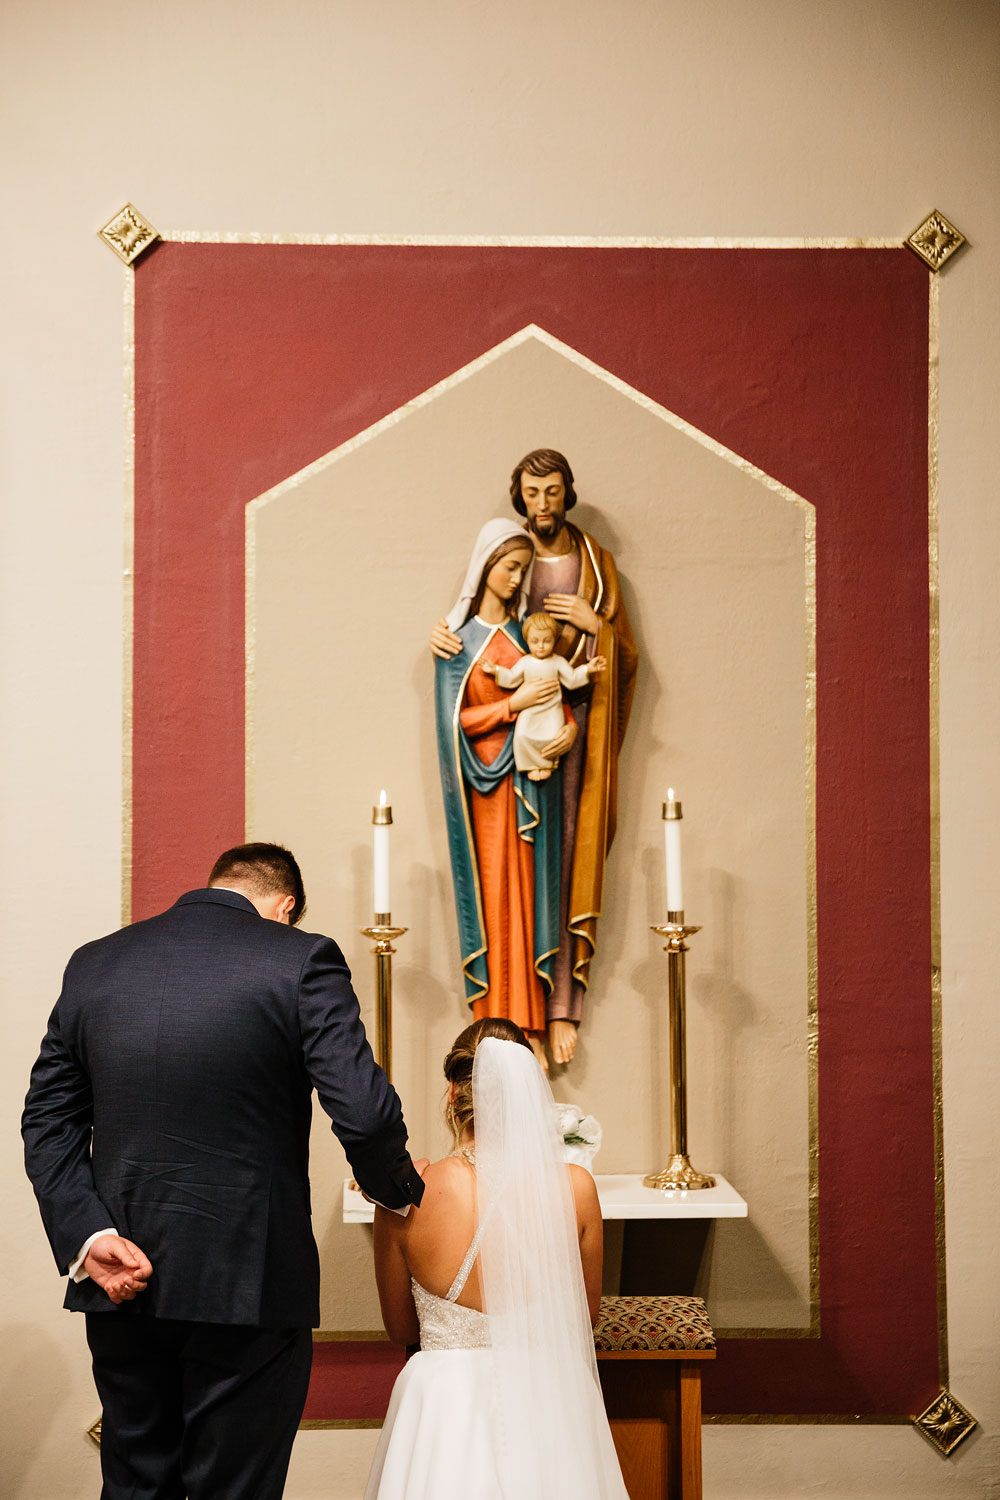 ohio-wedding-photography-downtown-wedding-photography-catholic-ceremony-st-bridget-st-demetrios-cultural-hall-60.jpg